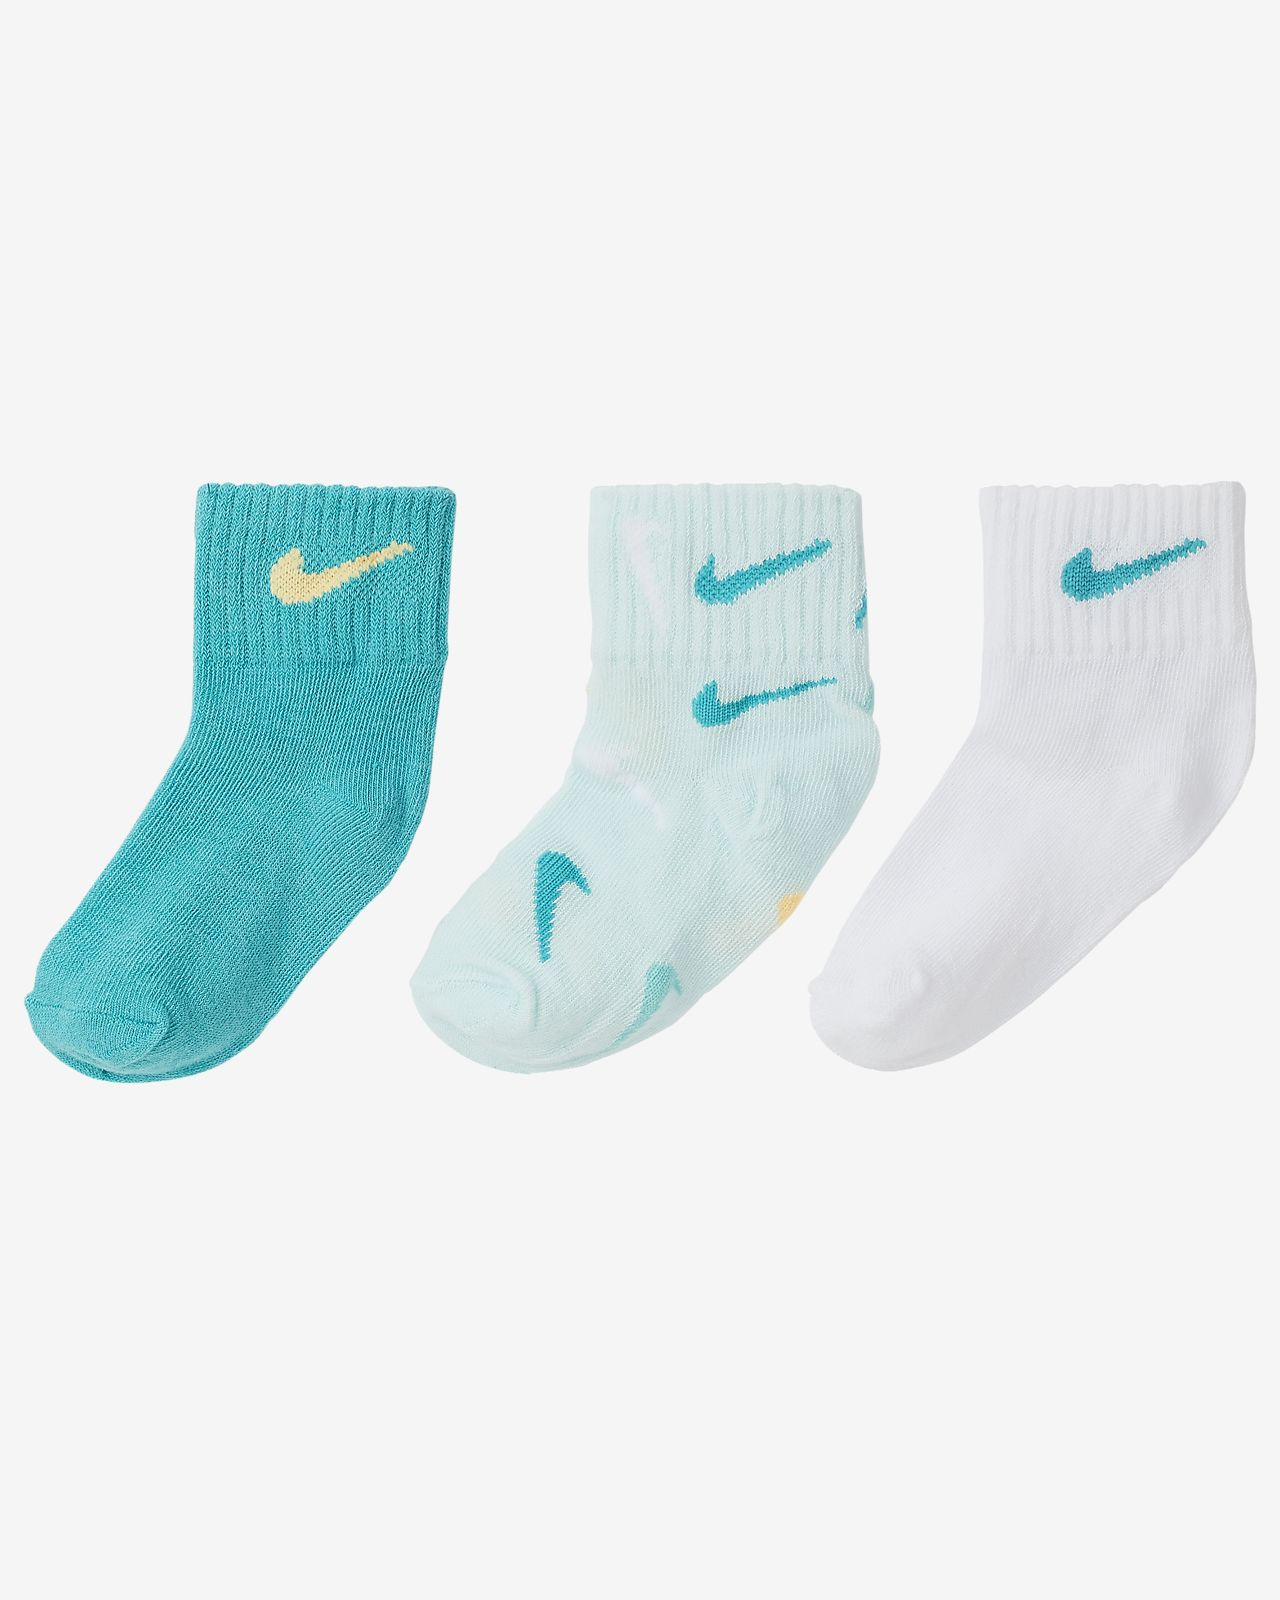 Nike Gripper Toddler Socks (3 Pairs)